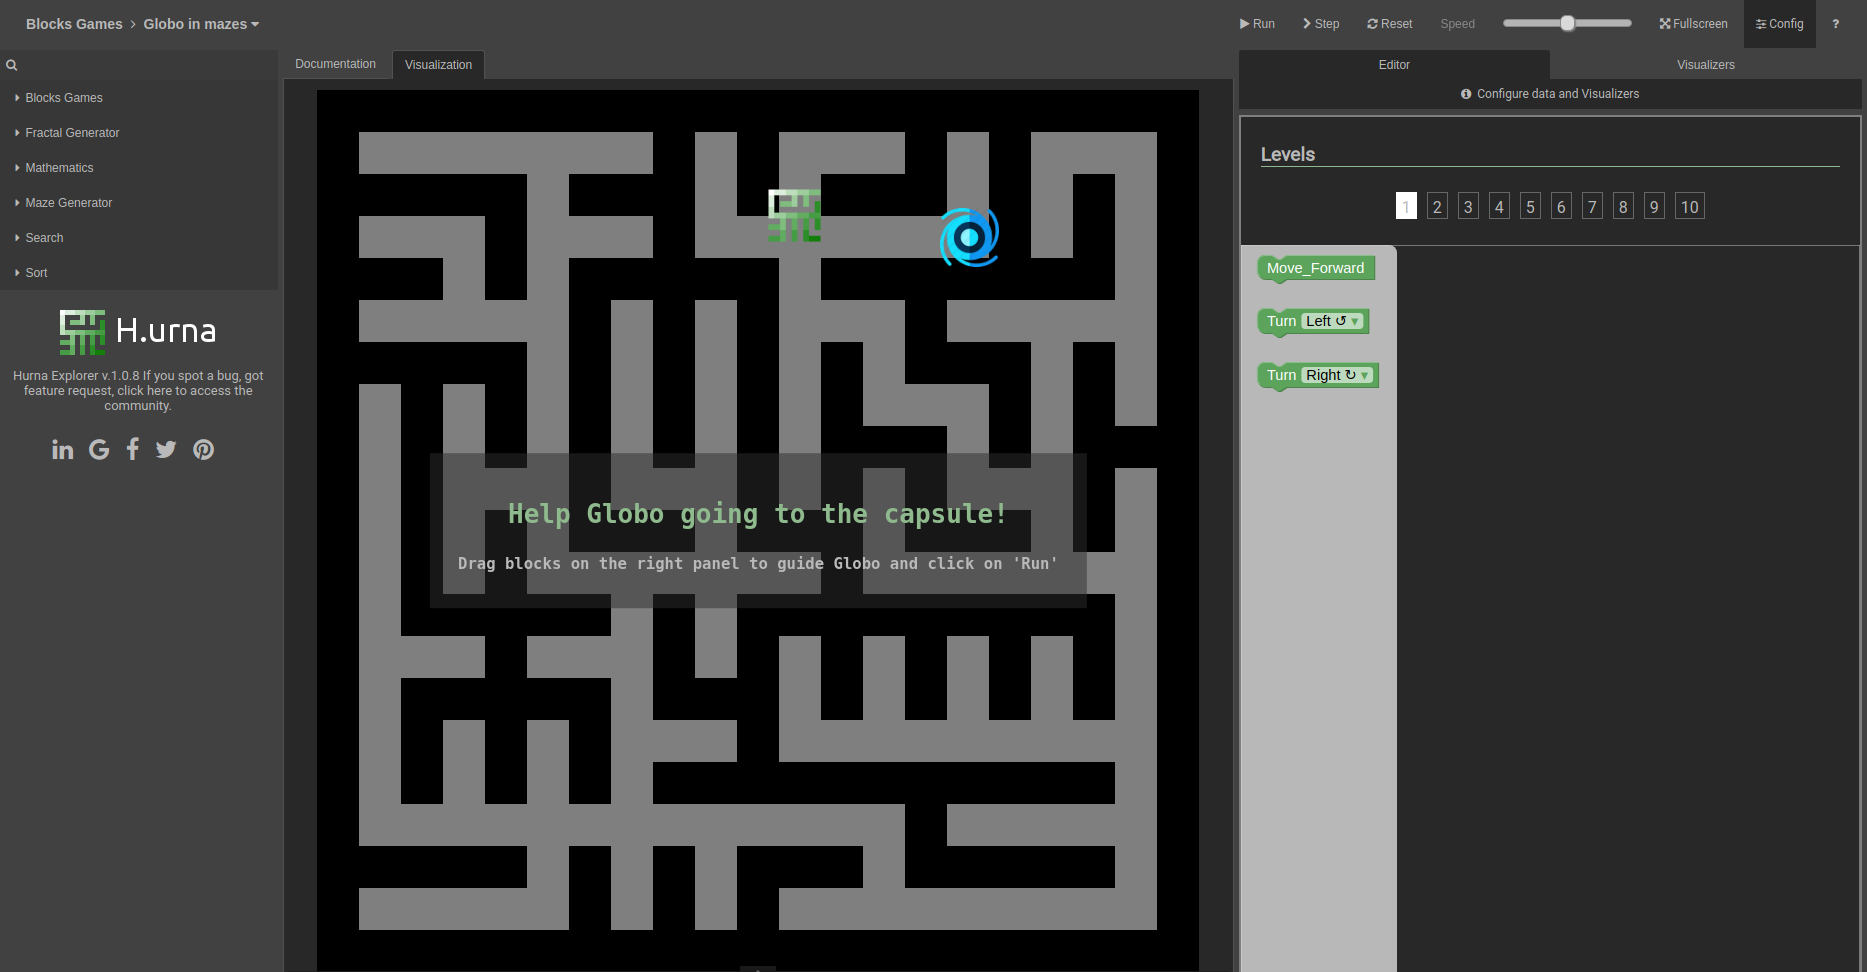 Screenshot Labyrinth - H.urna Blocks - Globo in mazes - Level 01